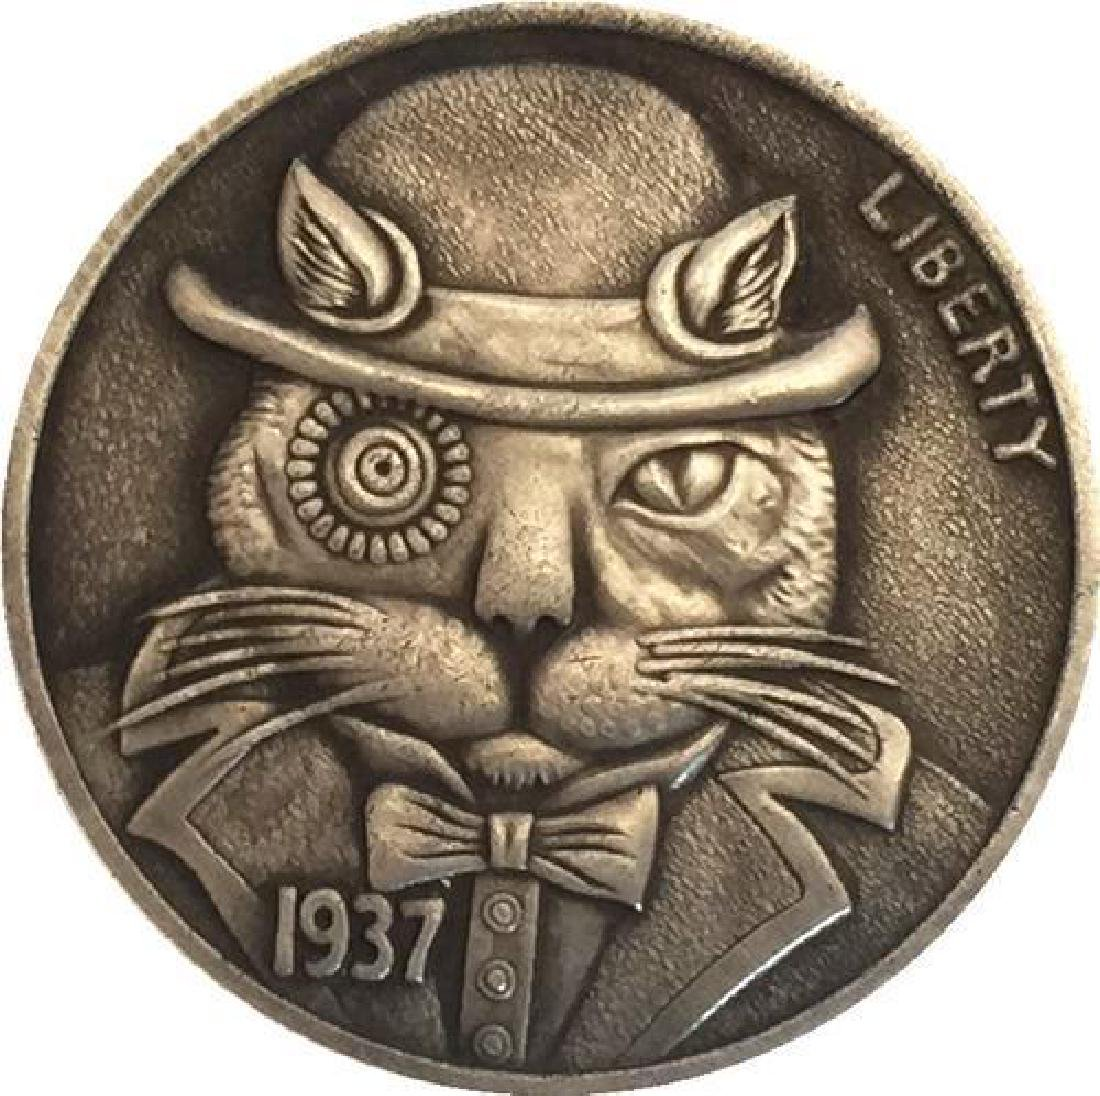 1937 USA Cat with Hat Buffalo Nickel Coin